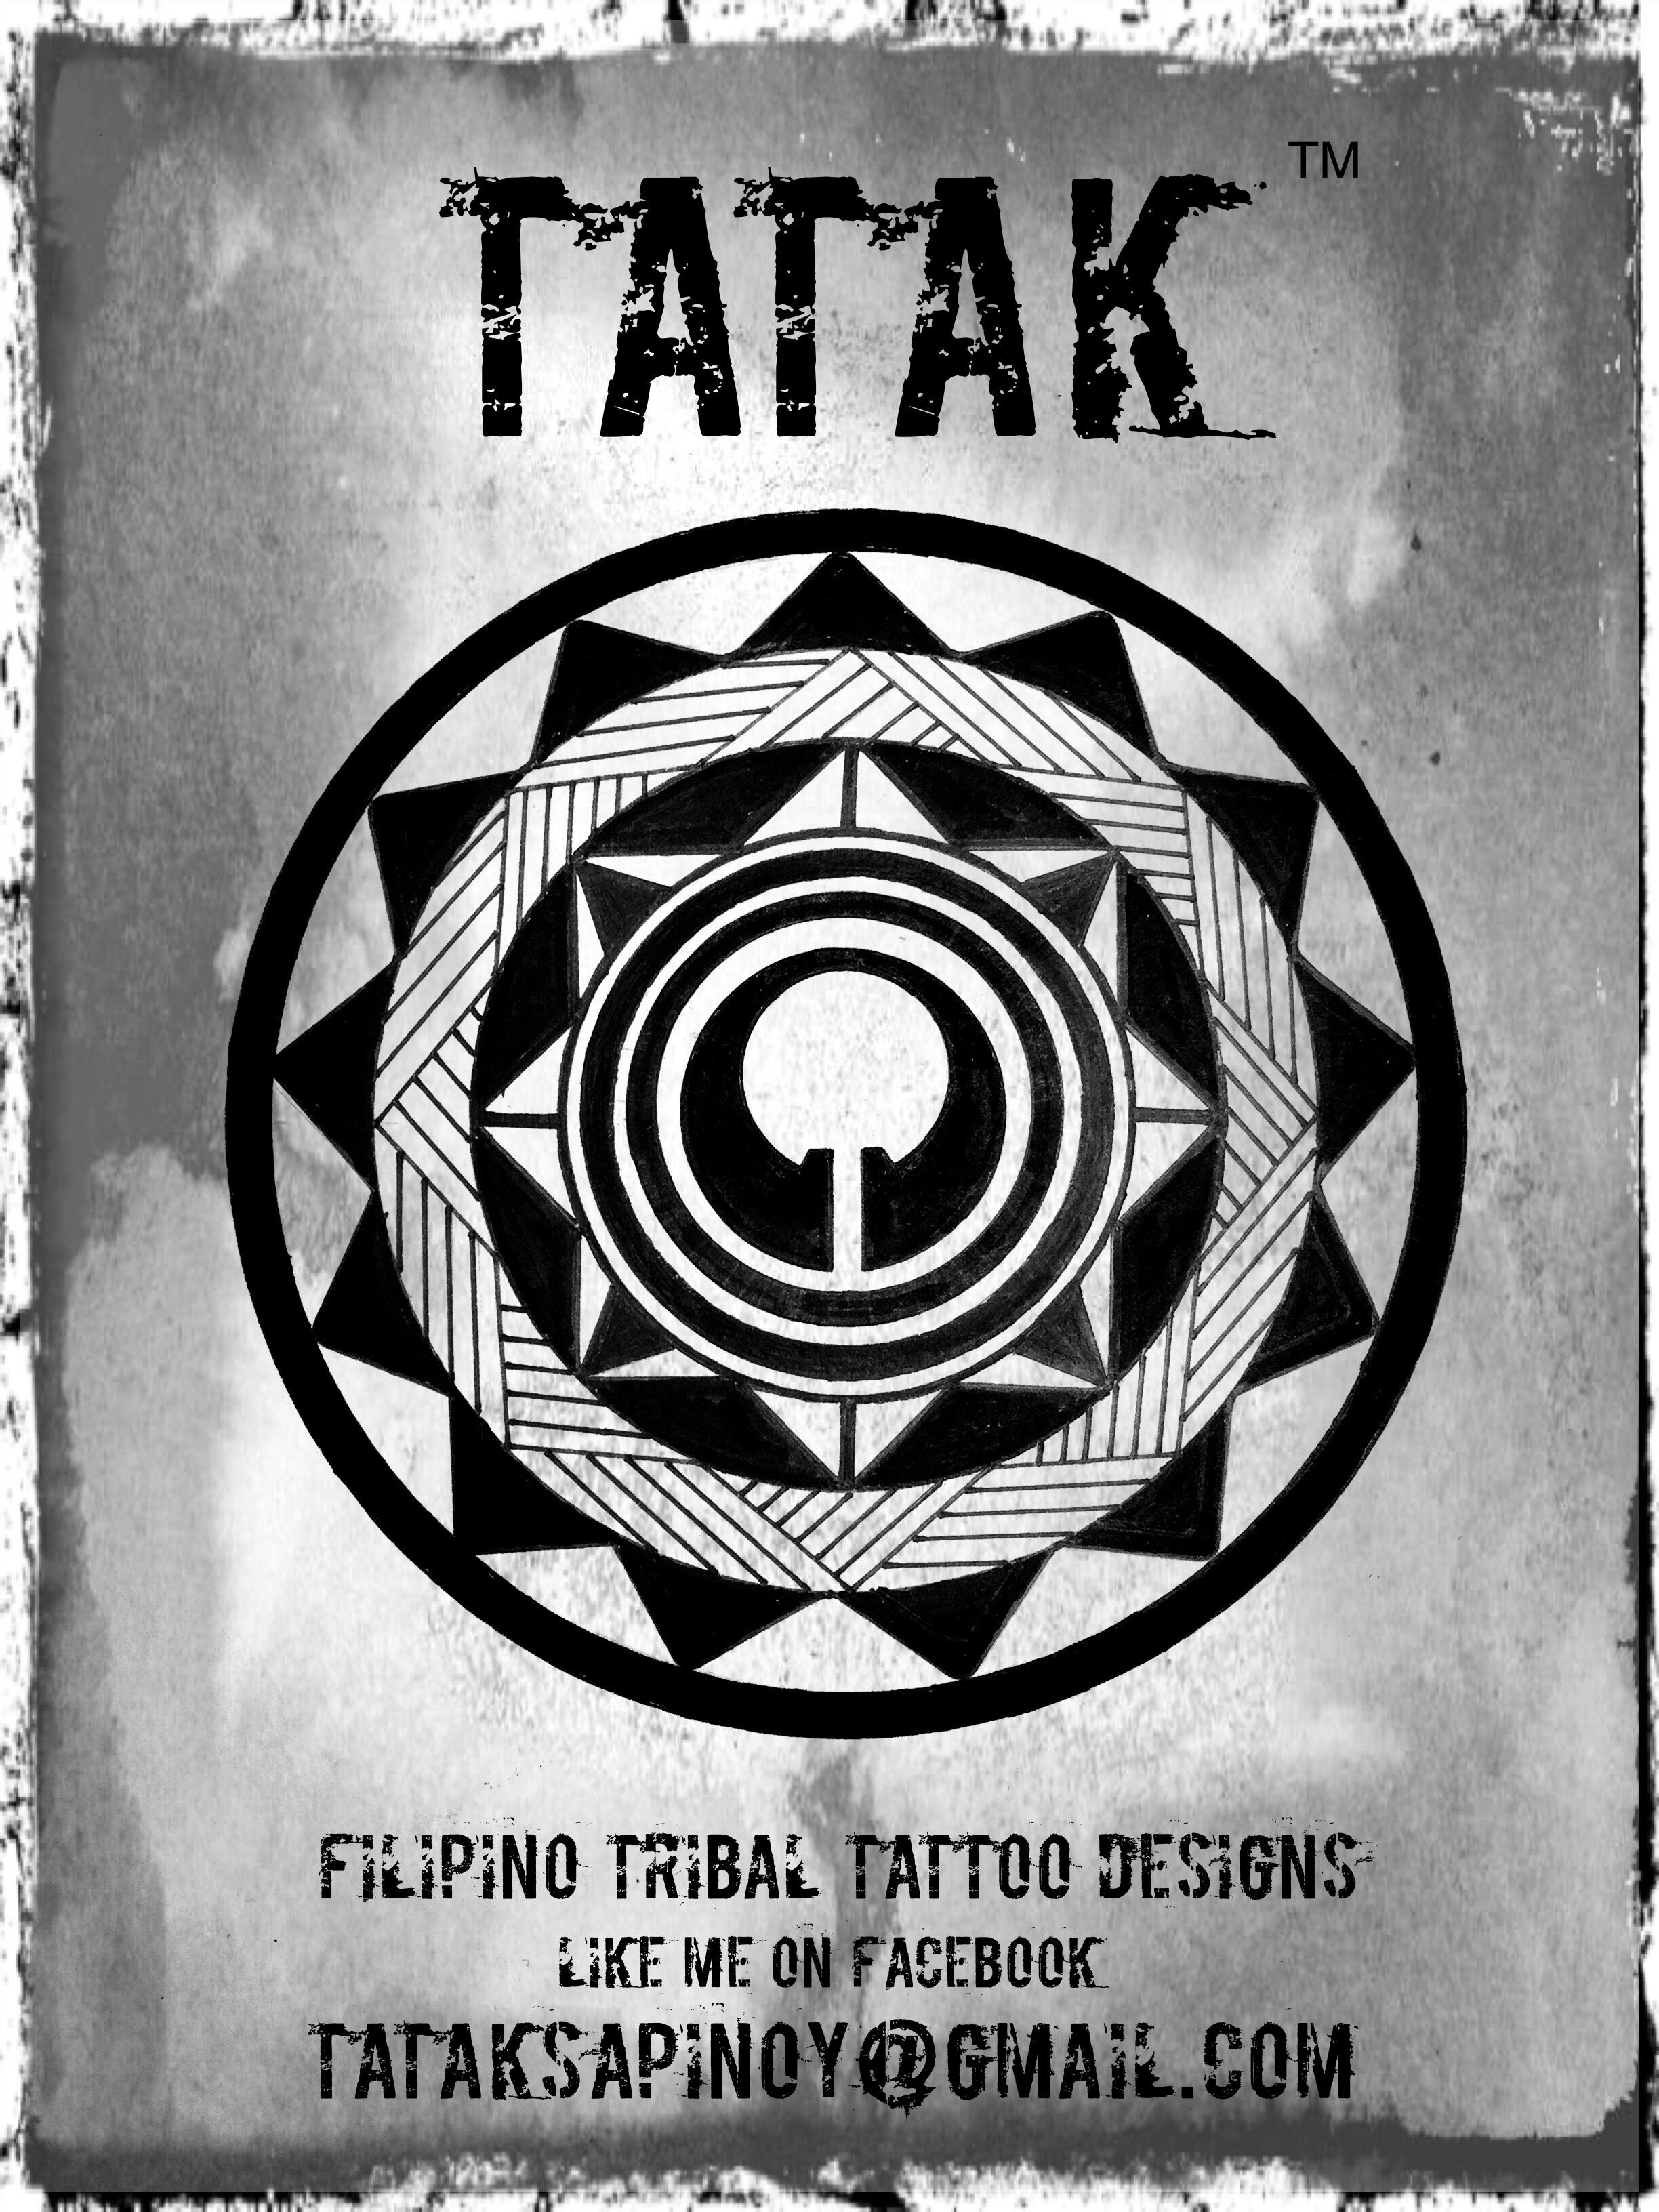 Arte Meaning In Tagalog I Create Contemporary Filipino Tribal Tattoo Designs Tattoo